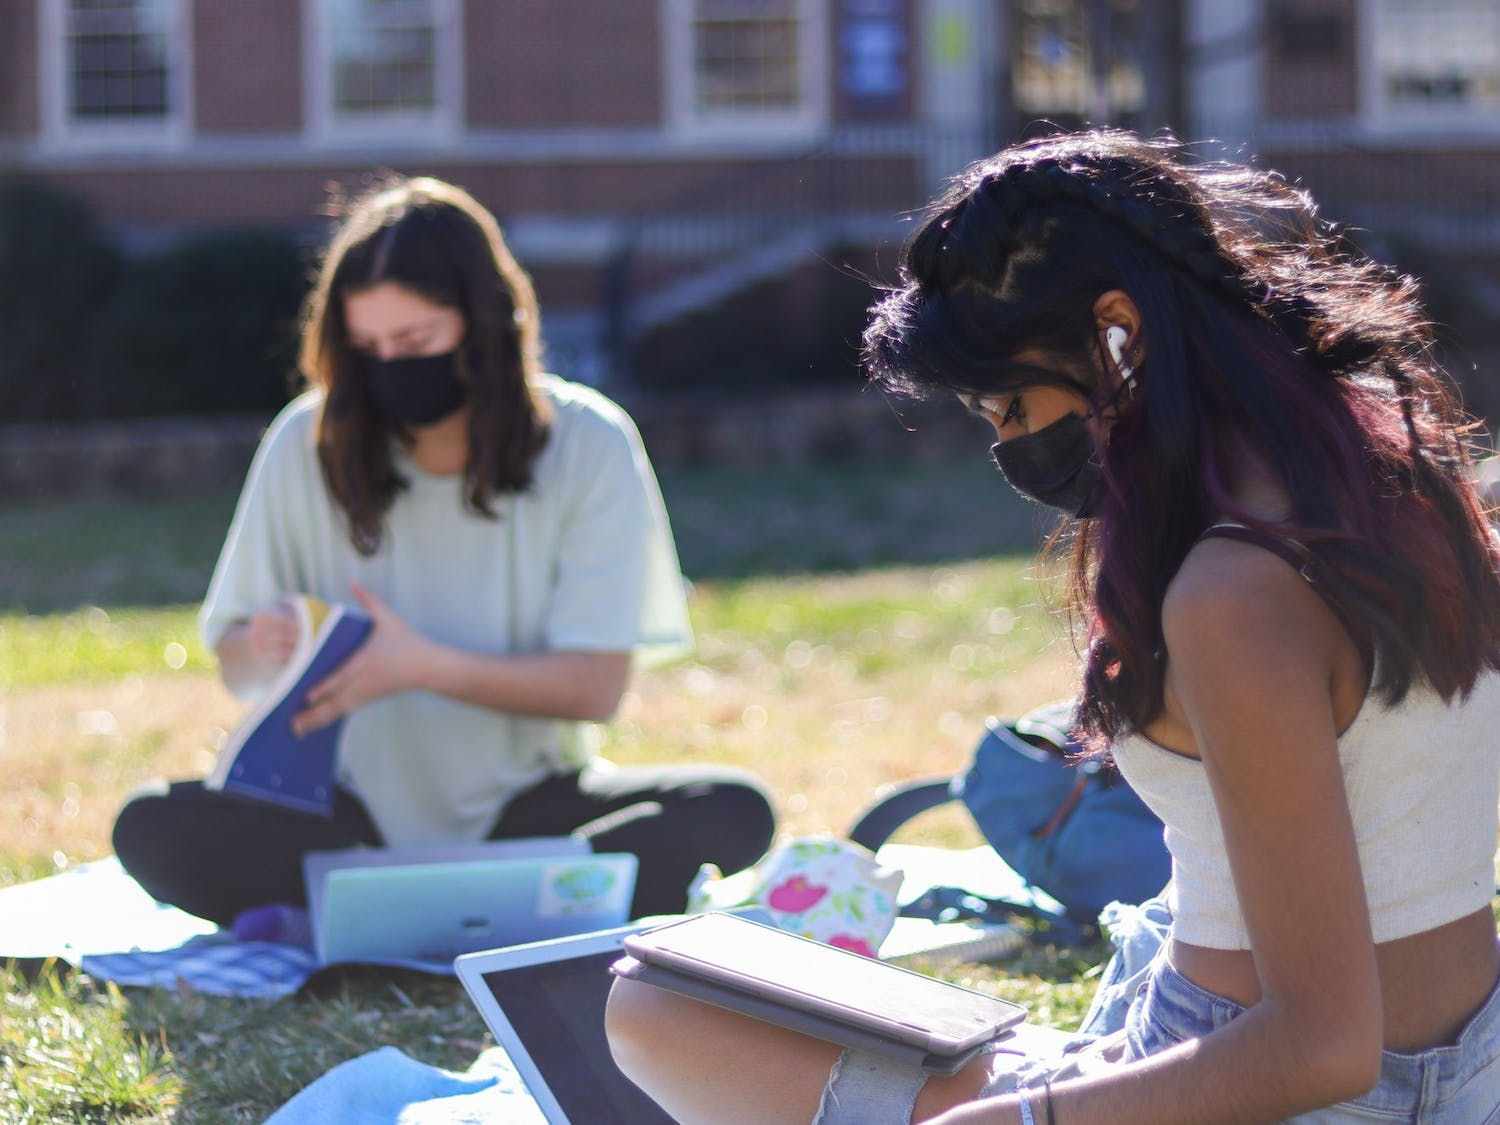 Sophomore students Naomi Nice and Megha Iyer study on Polk Place on Feb. 25, 2021.